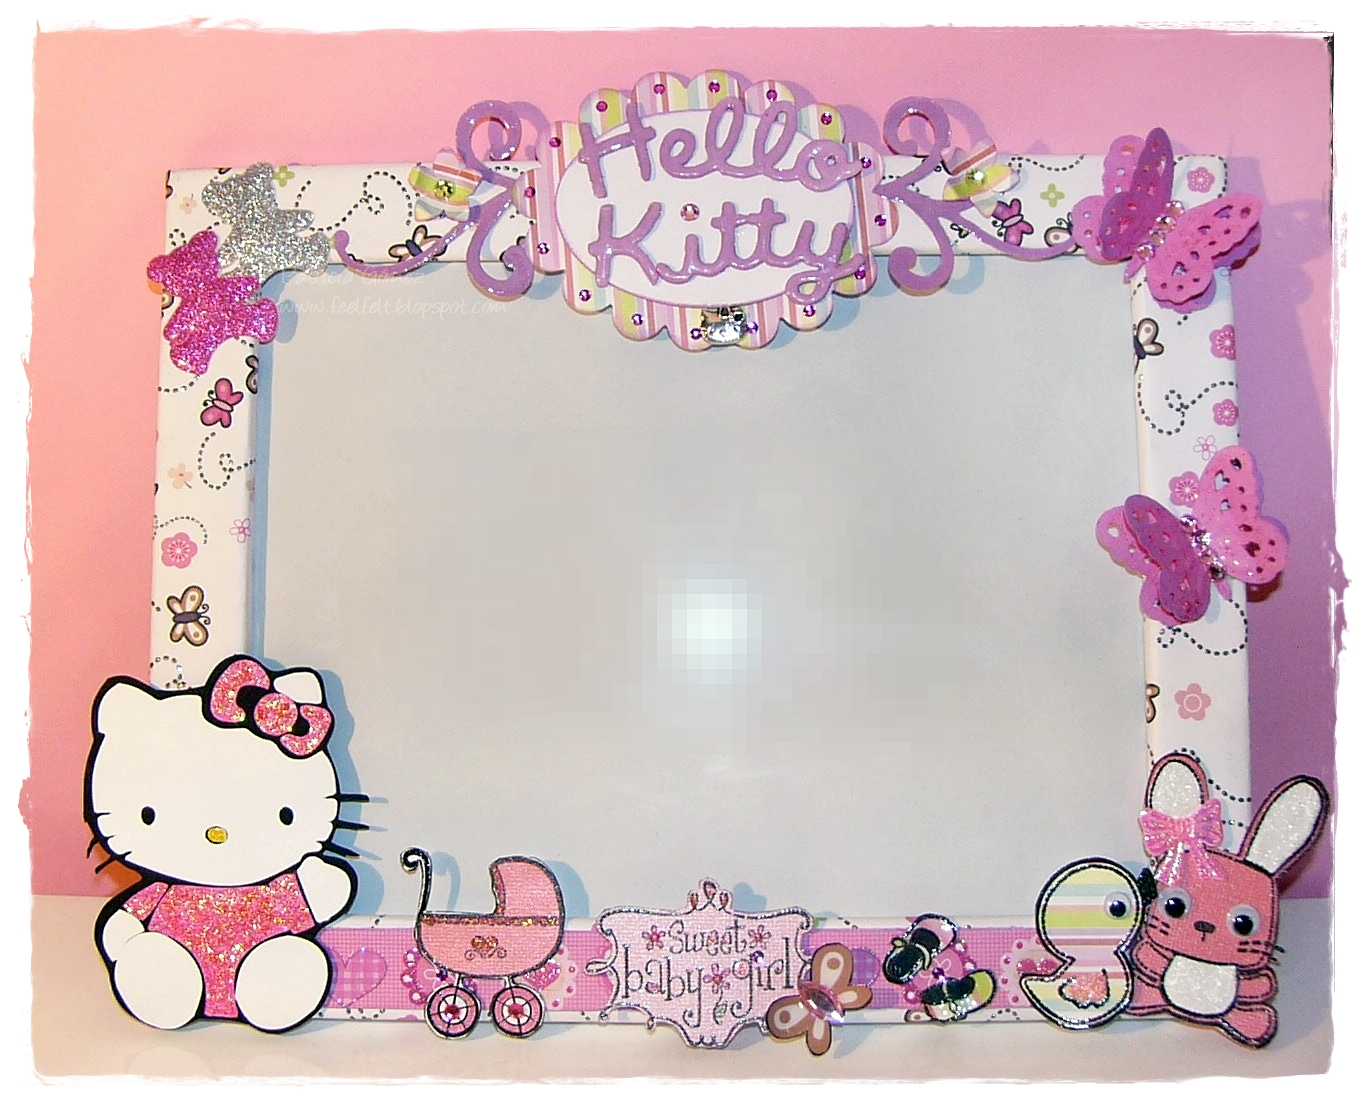 Feel felt hello kitty frame for Decoracion de marcos para fotos